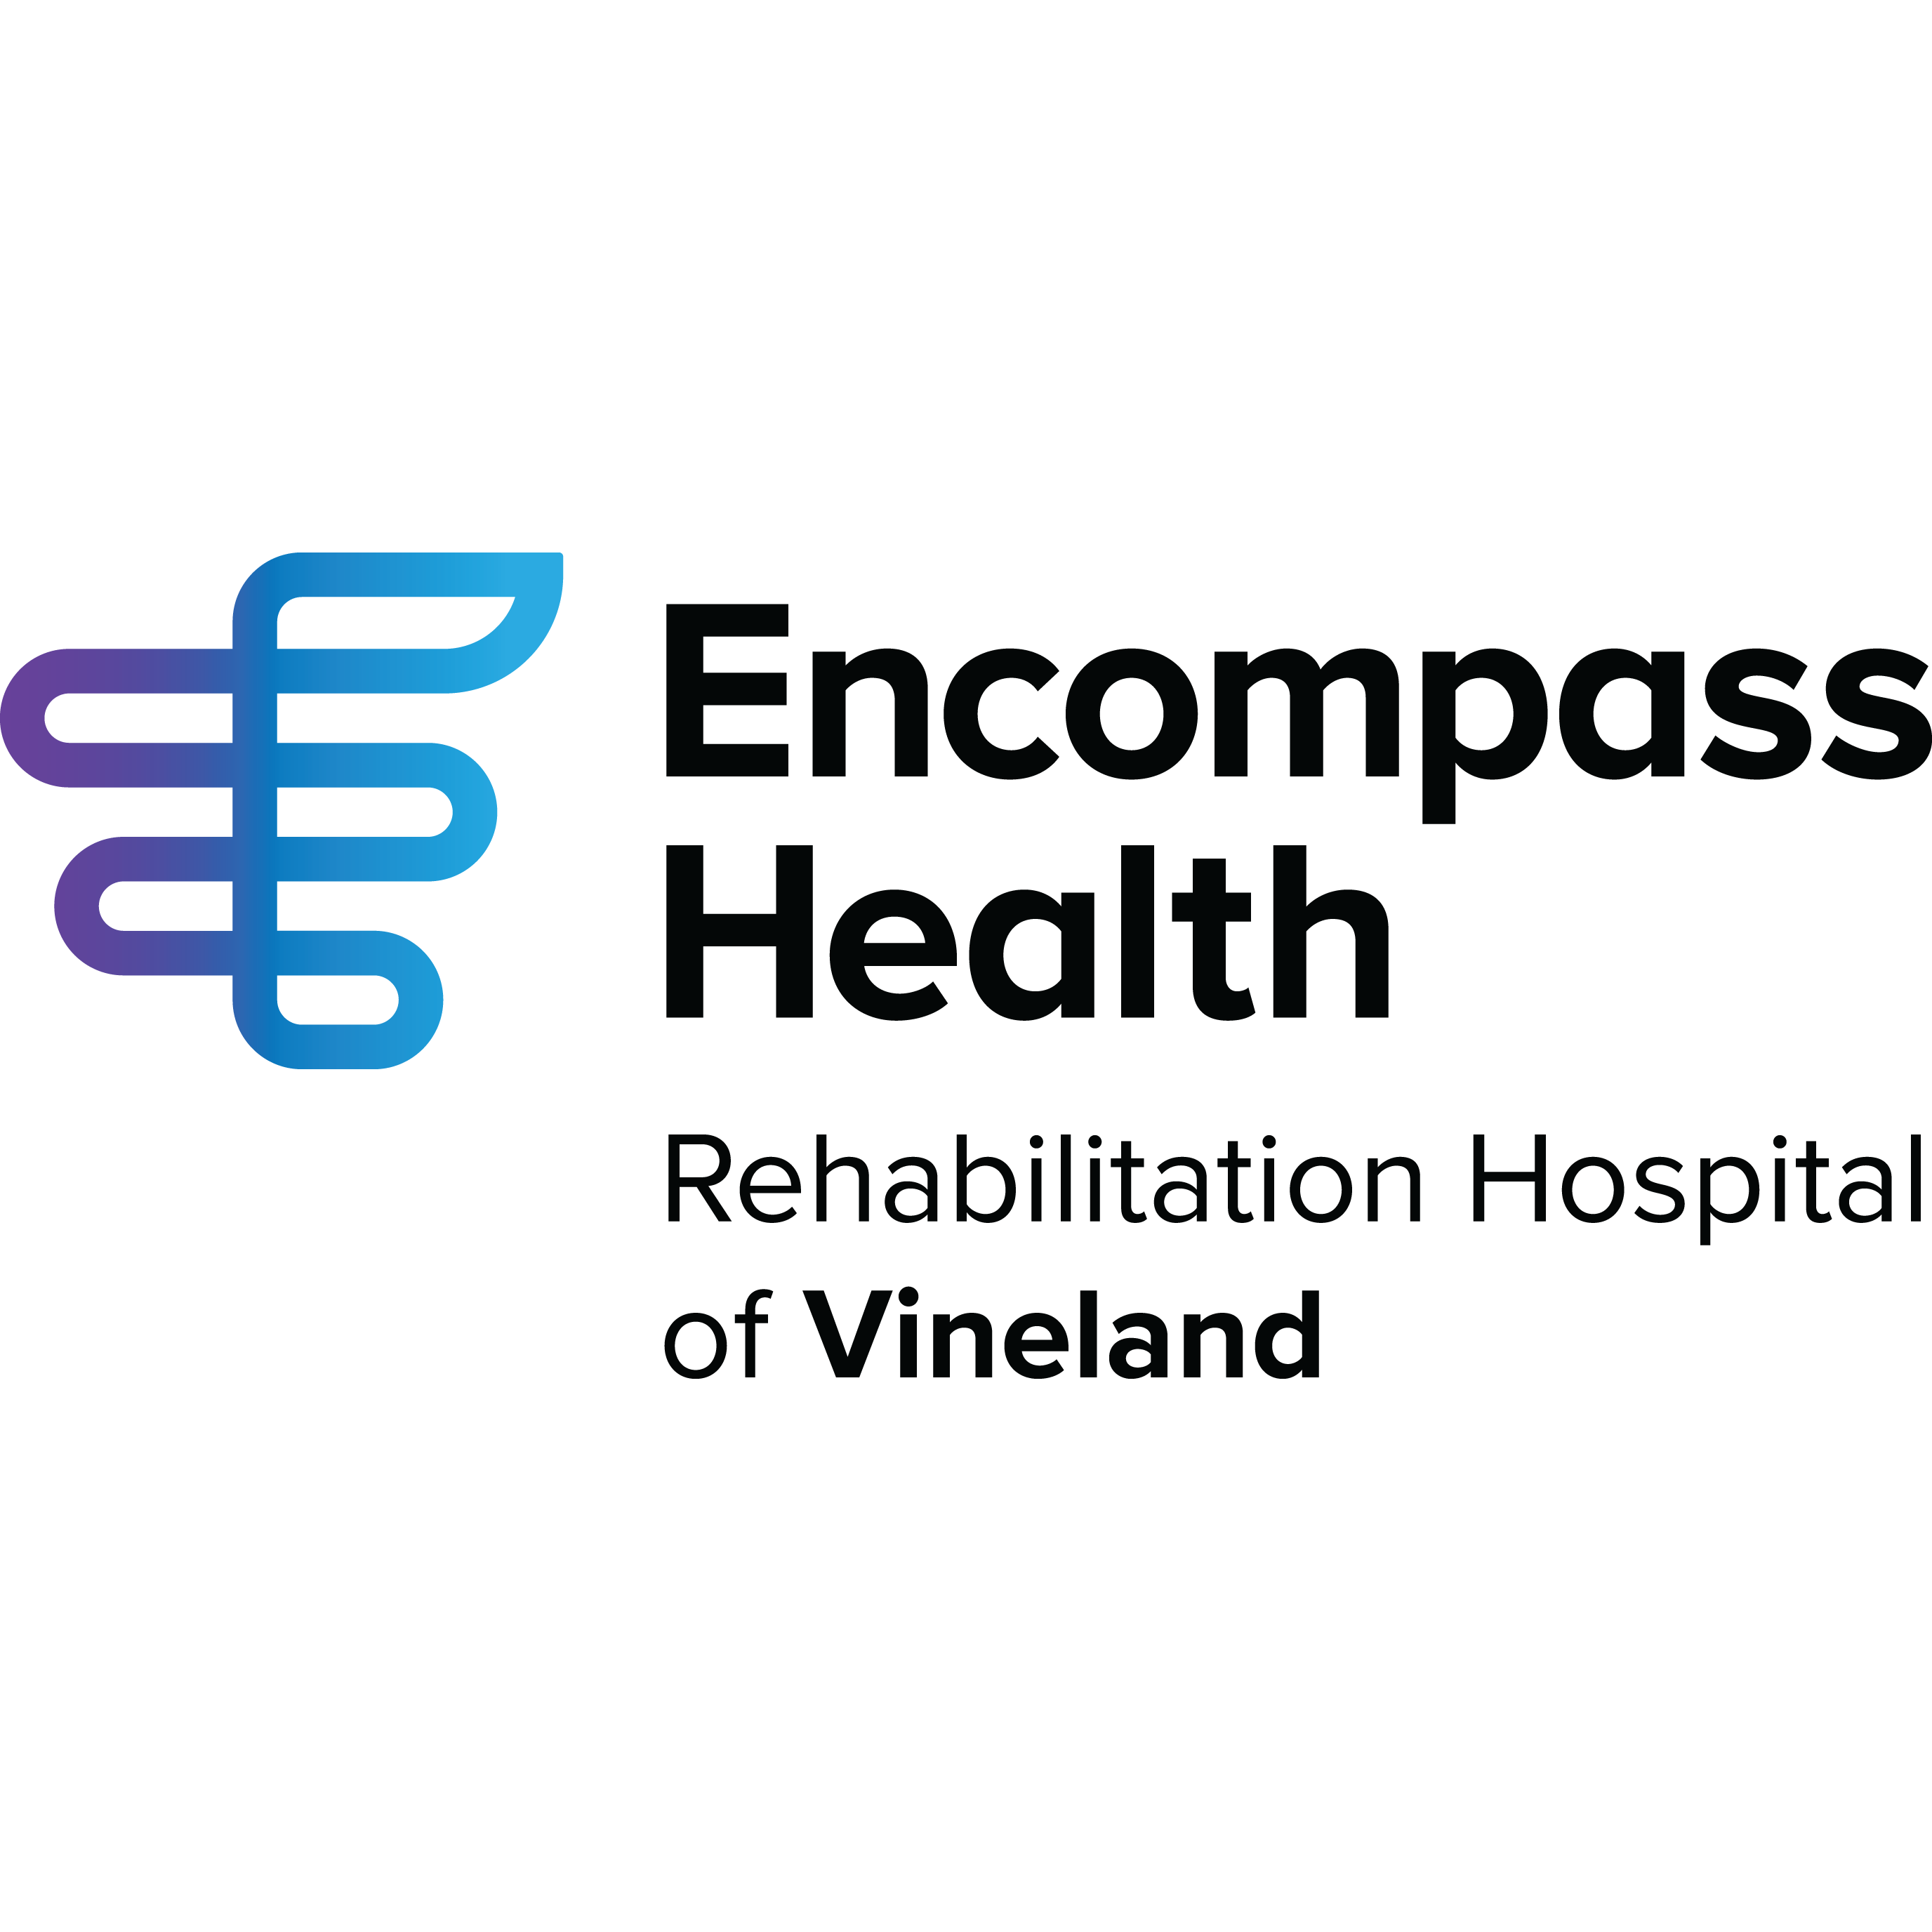 Encompass Health Rehabilitation Hospital of Vineland